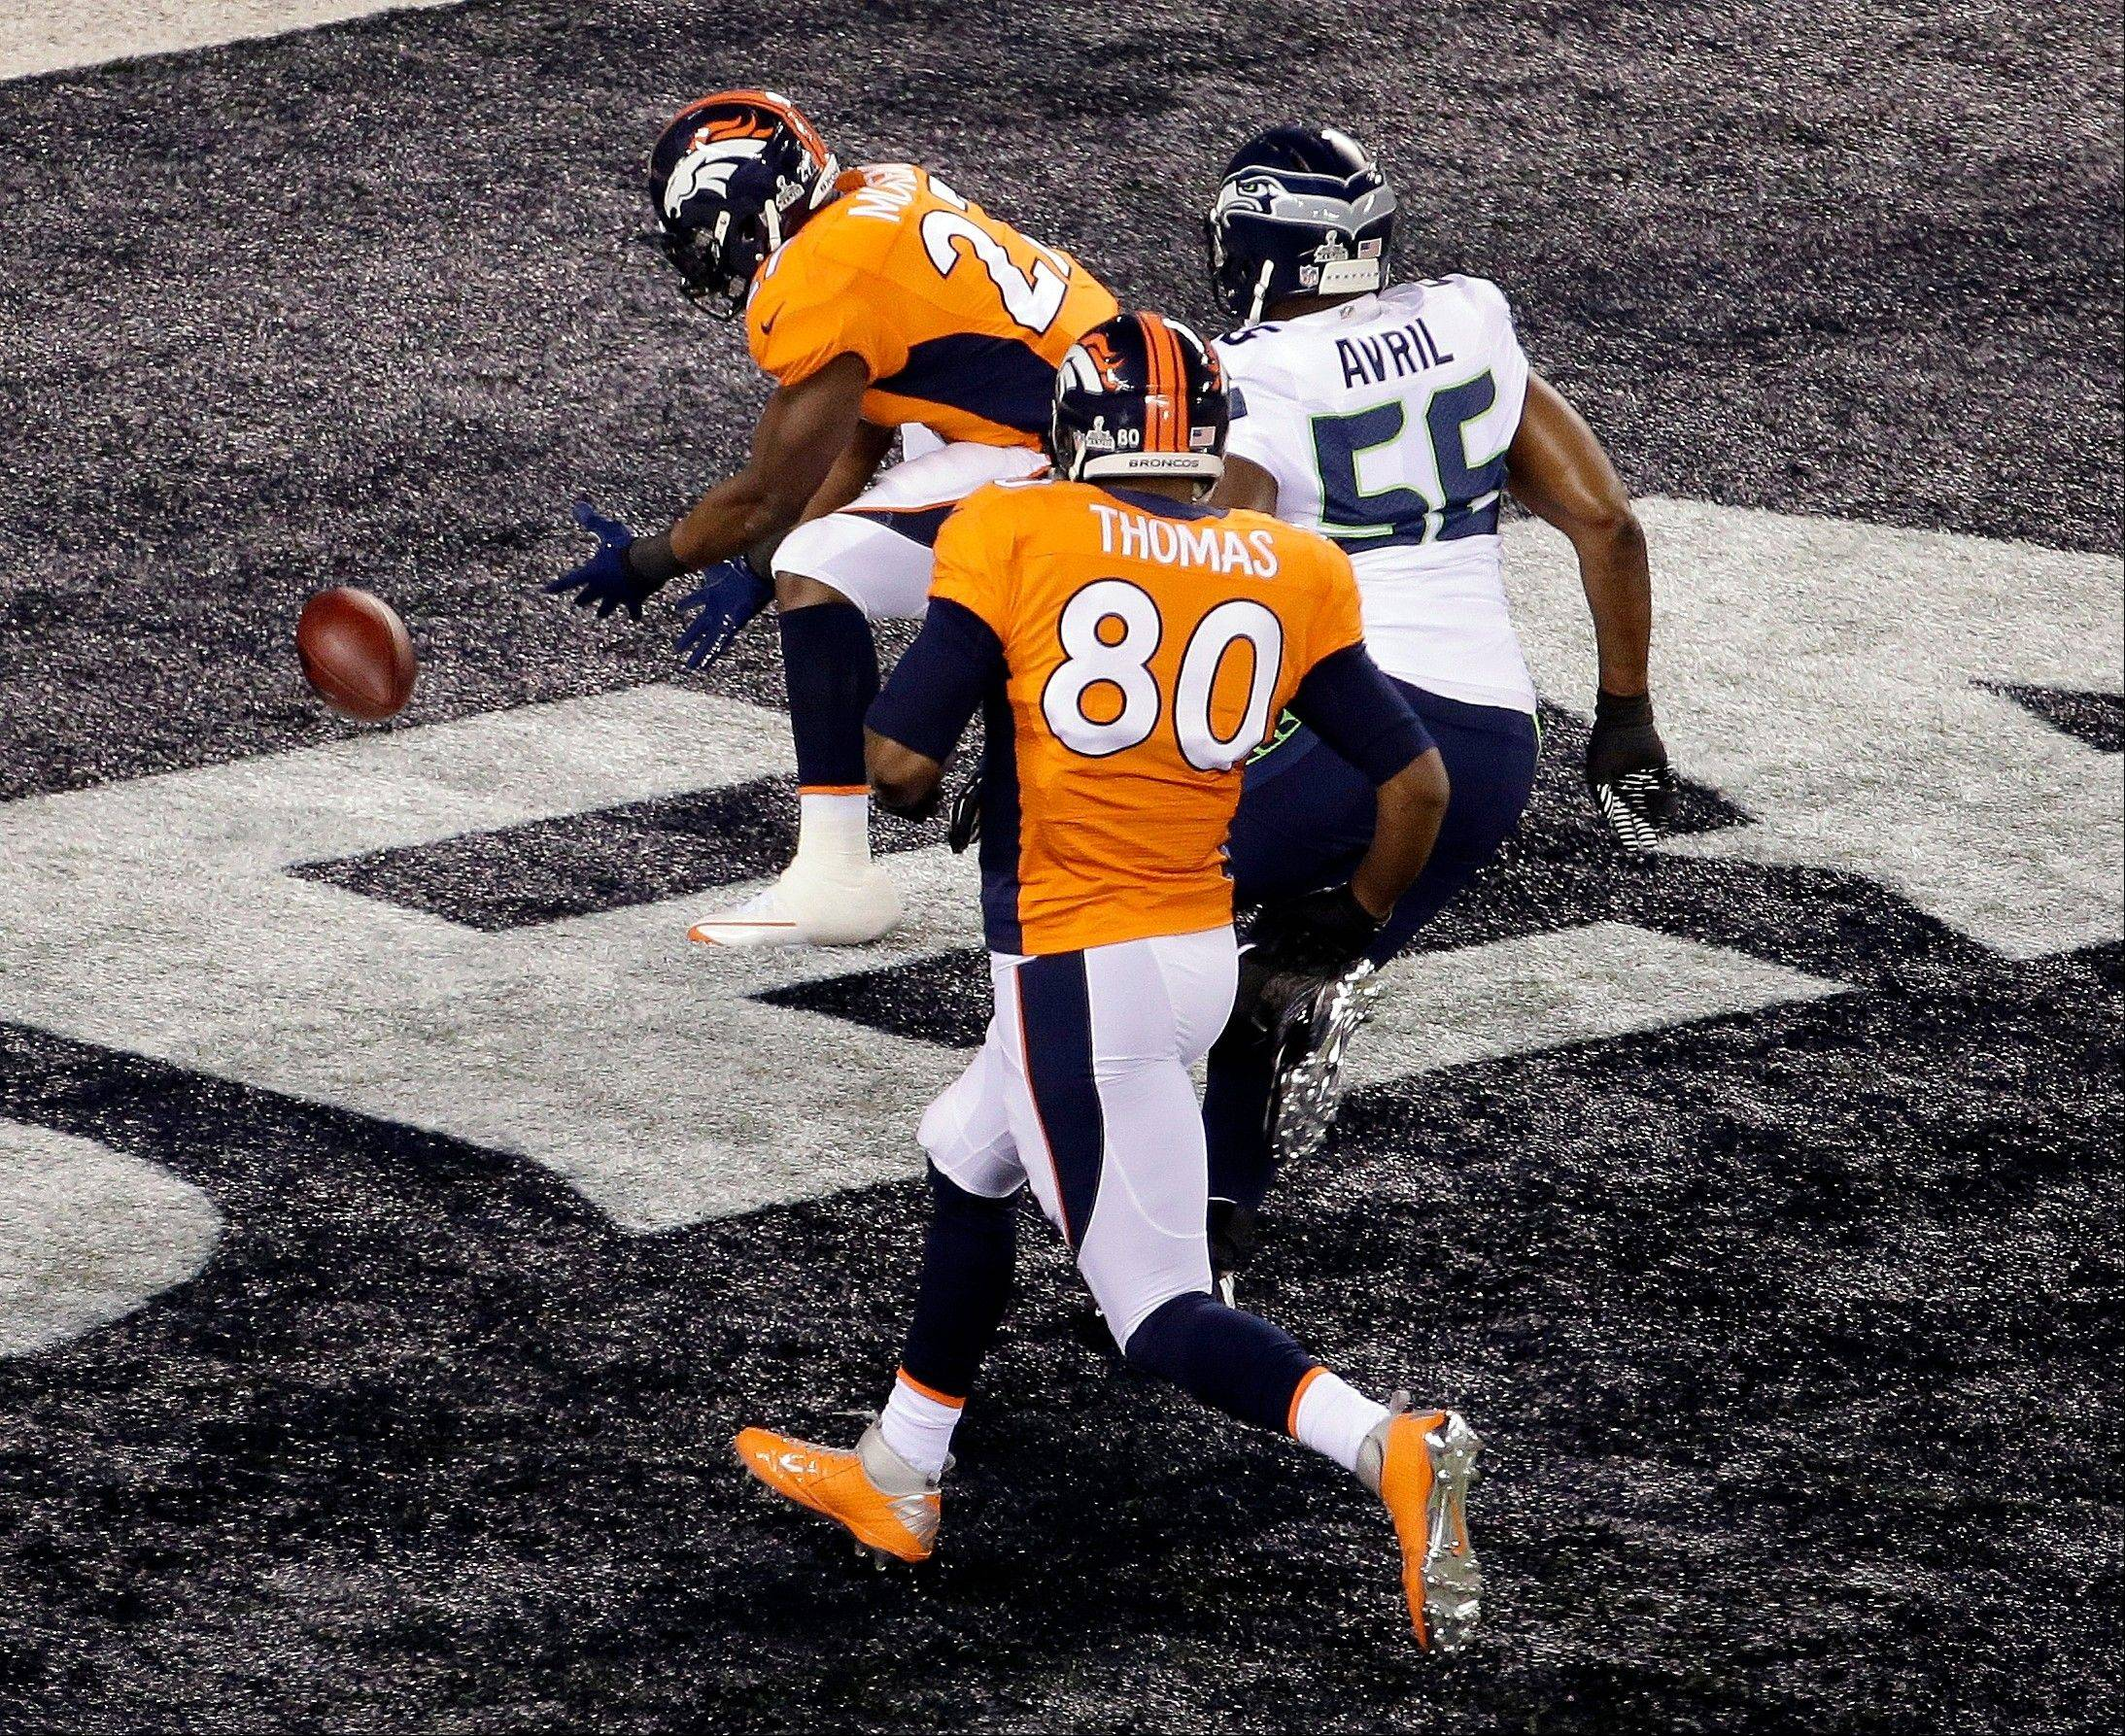 Denver Broncos' Knowshon Moreno (27) recovers the football in the end zone for a safety as Seattle Seahawks' Heath Farwell (55) and teammate Julius Thomas (80) chase him during the first half of the NFL Super Bowl XLVIII football game Sunday, Feb. 2, 2014, in East Rutherford, N.J.